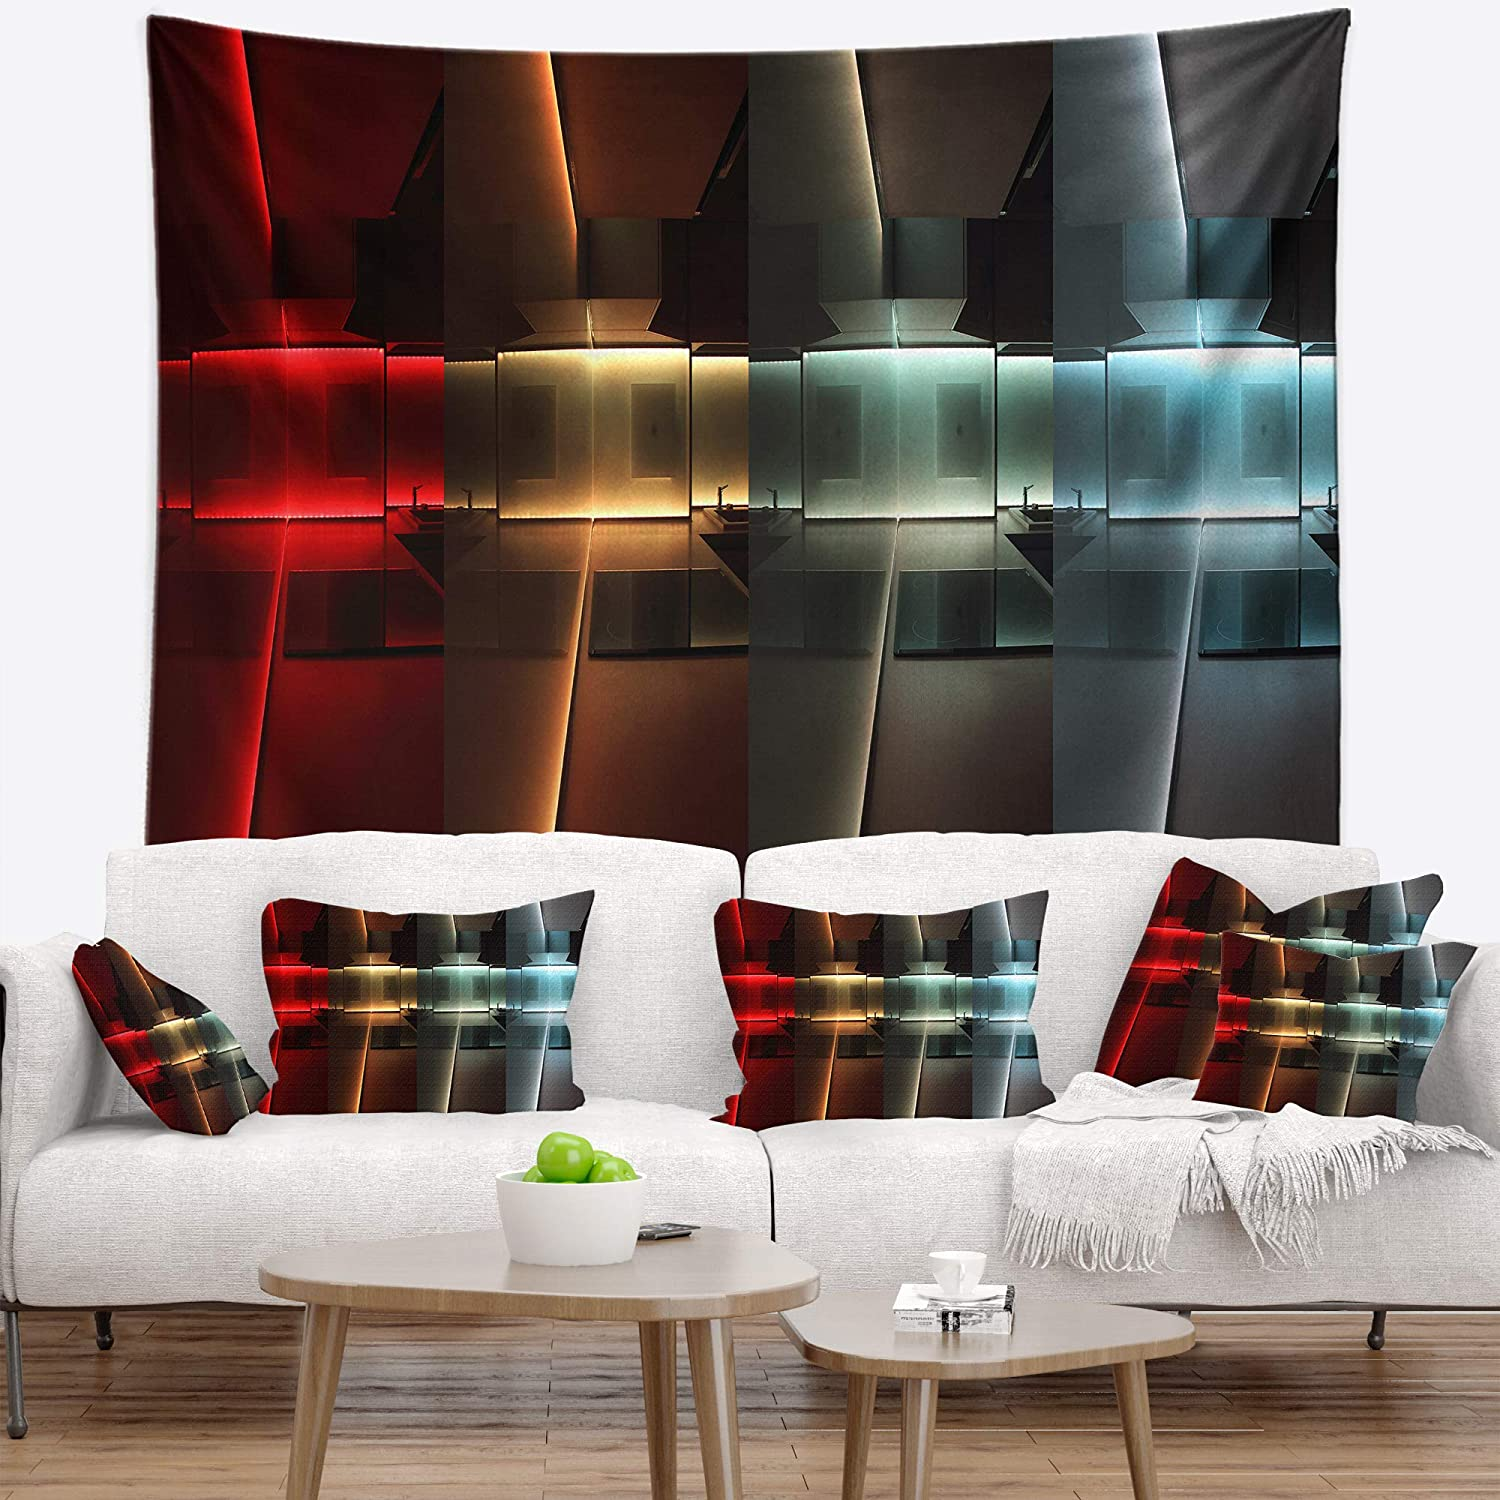 Designart TAP8255-80-68  Kitchen with LED Lighting Abstract Blanket D/écor Art for Home and Office Wall Tapestry x Large 80 x 68 Created On Lightweight Polyester Fabric